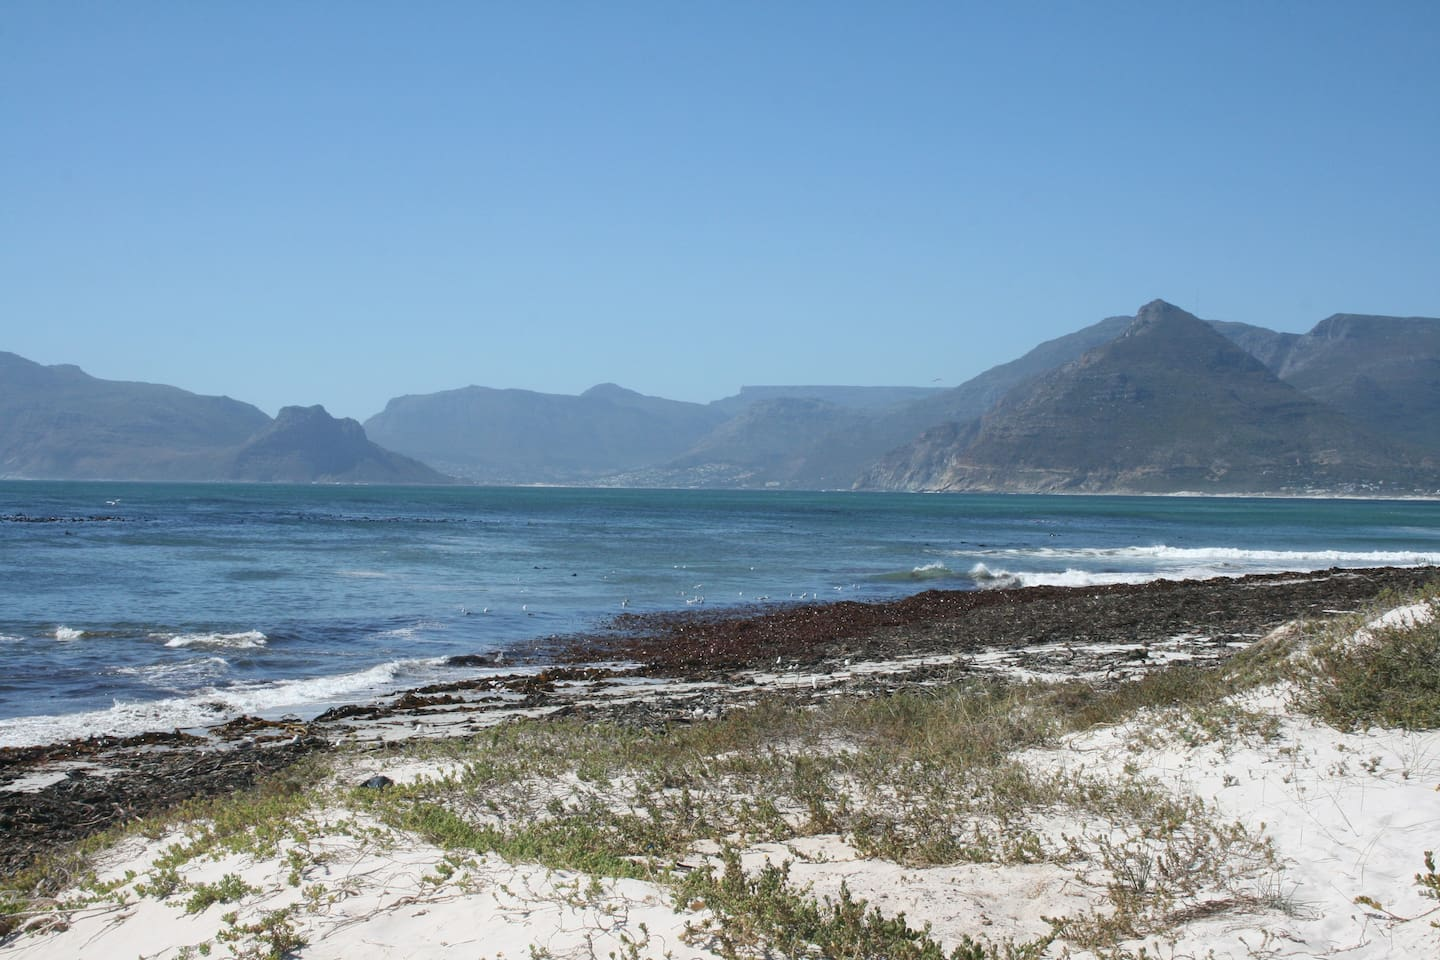 Beautiful scenery in Kommetjie